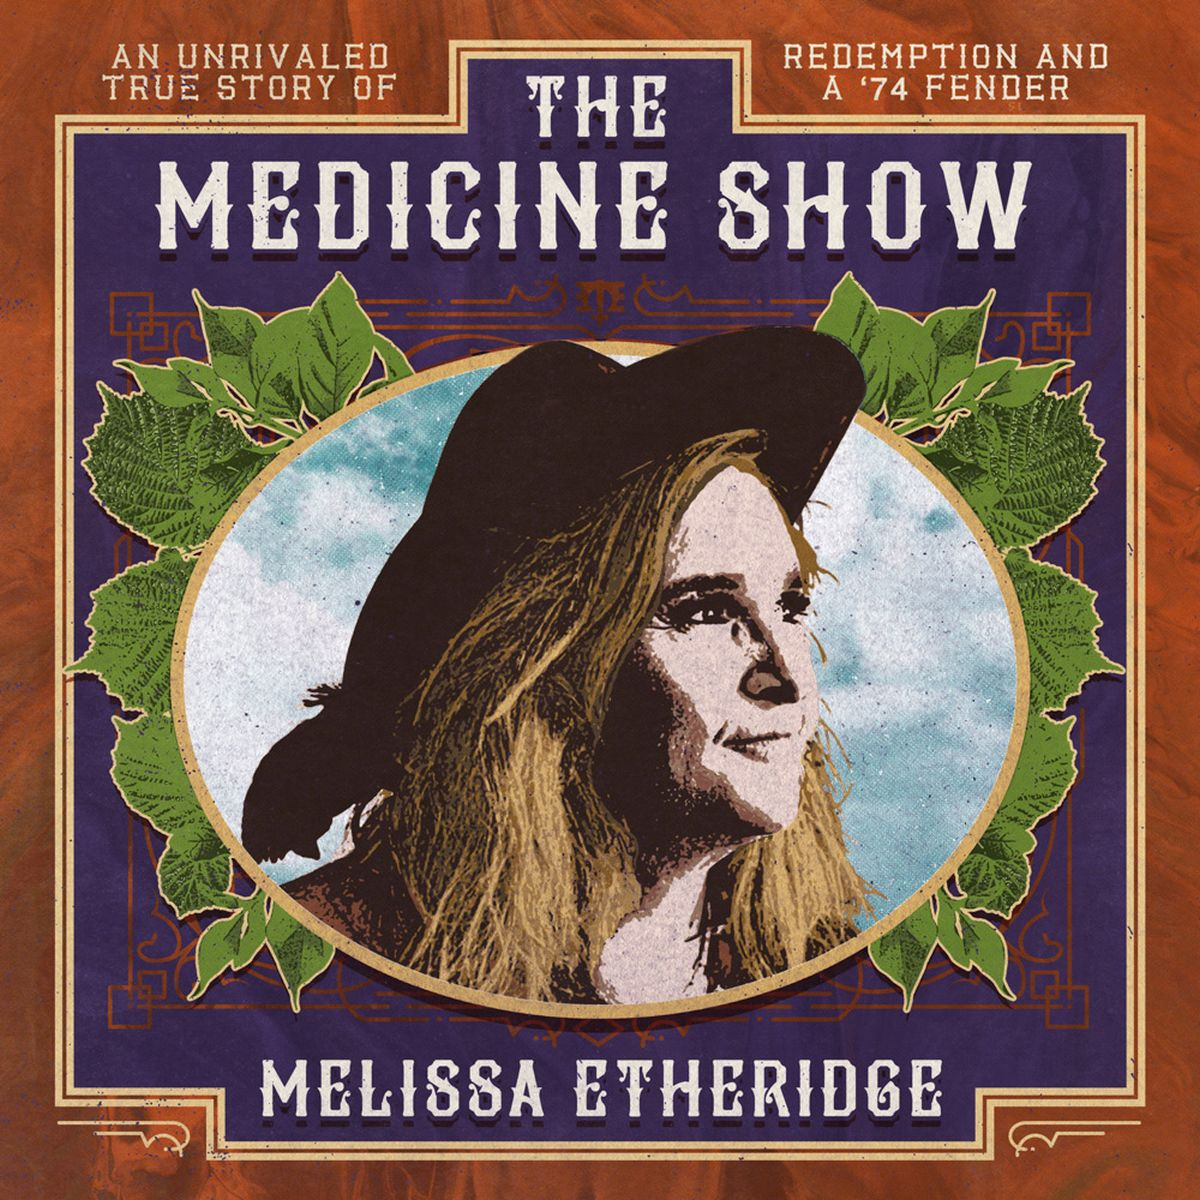 Cover: Wild and lonely, Melissa Etheridge